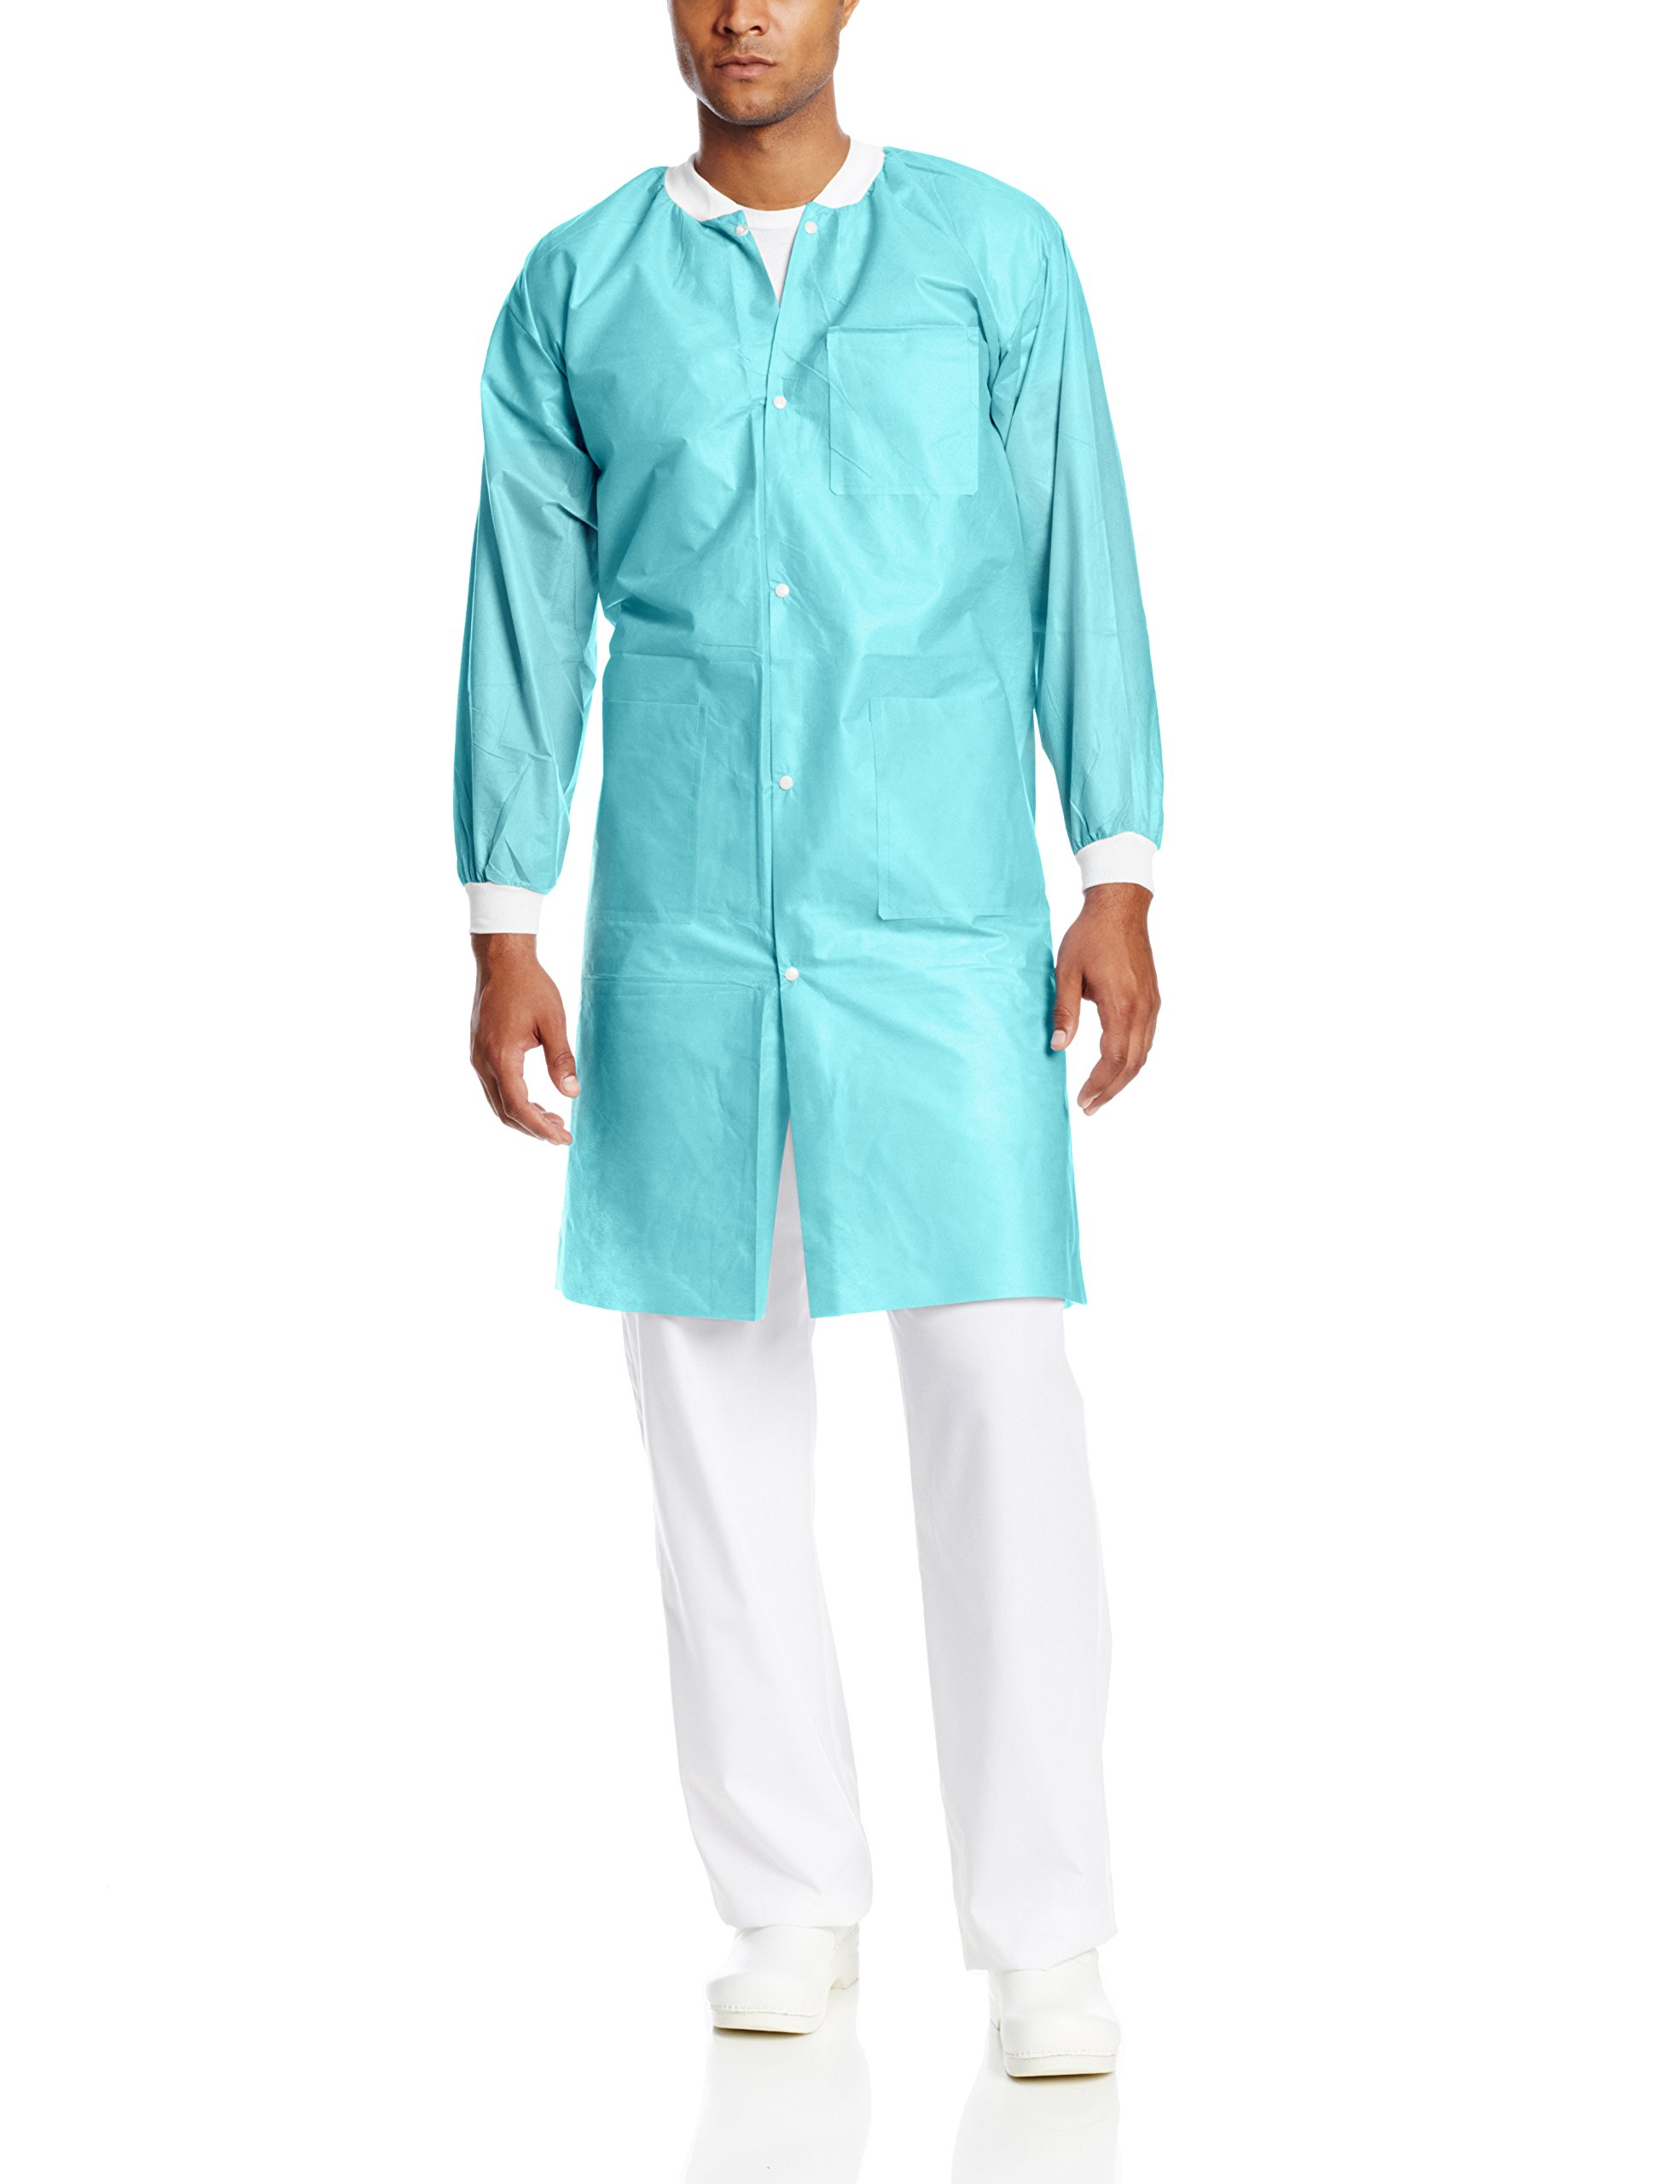 ValuMax 3660TEM Extra-Safe, Wrinkle-Free, Noble Looking Disposable SMS Knee Length Lab Coat, Teal, M, Pack of 10